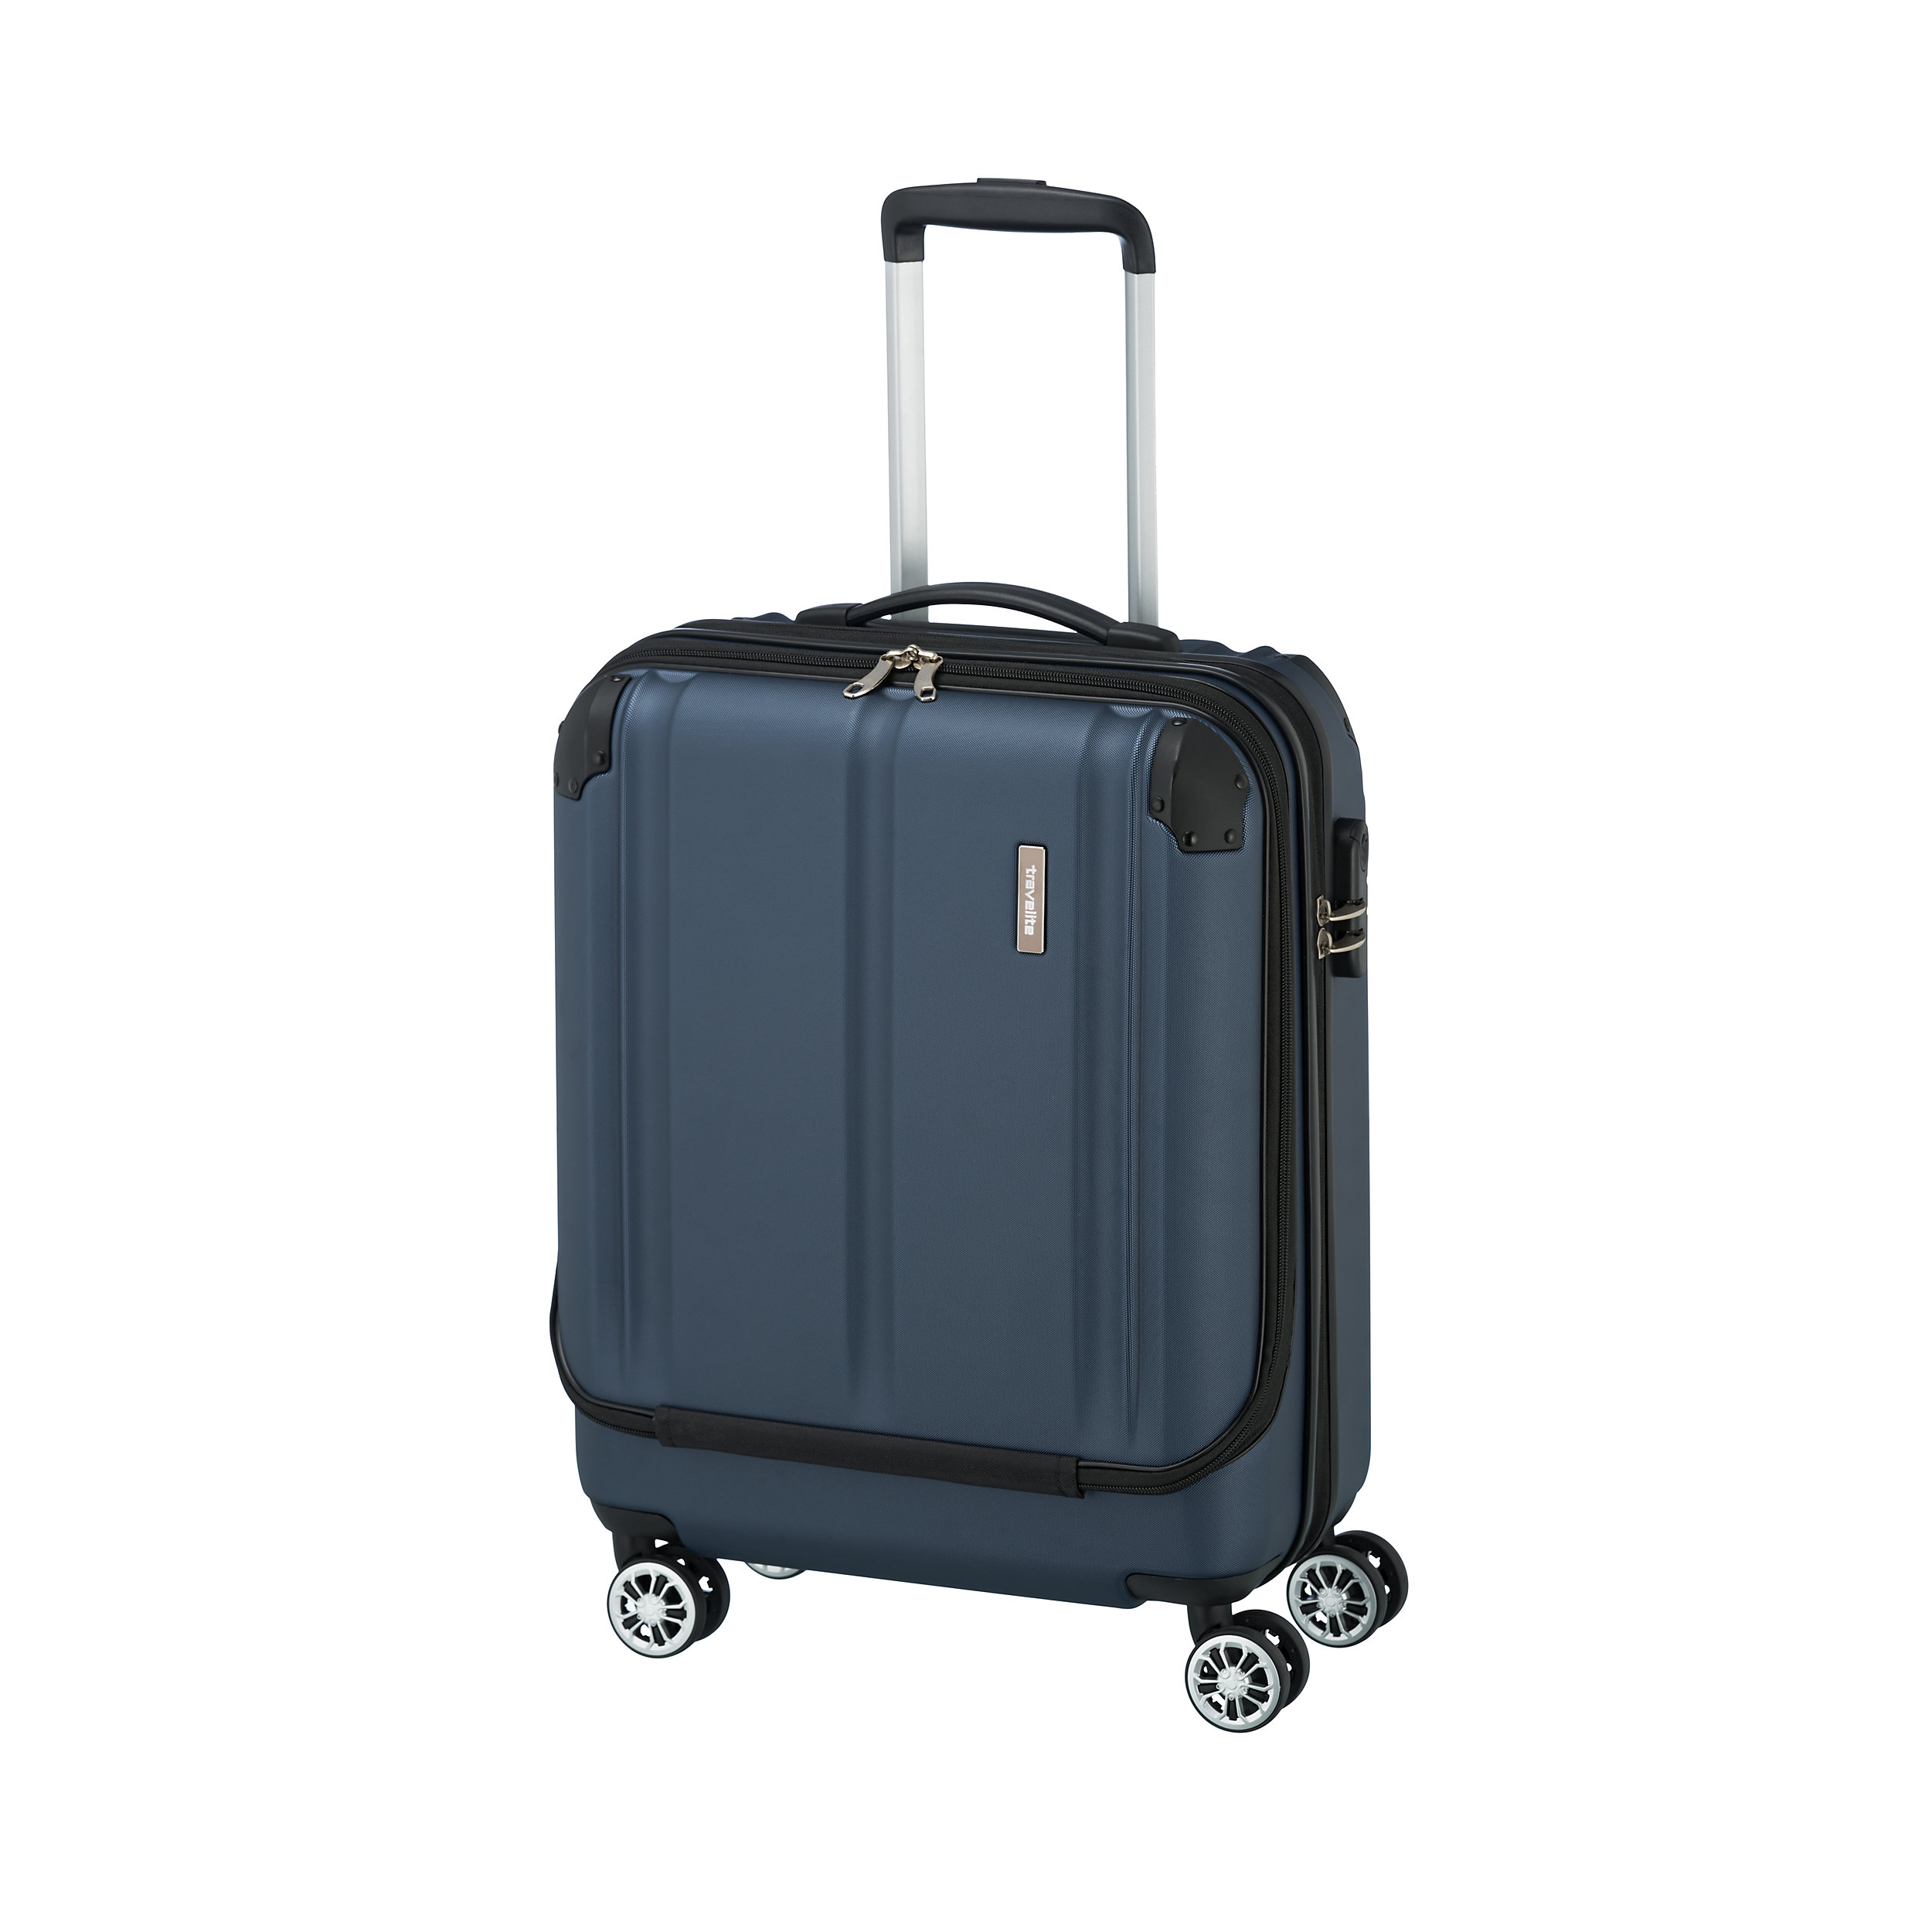 Handgepäcktrolley mit 4 Rollen 55cm Business City S 40 Liter